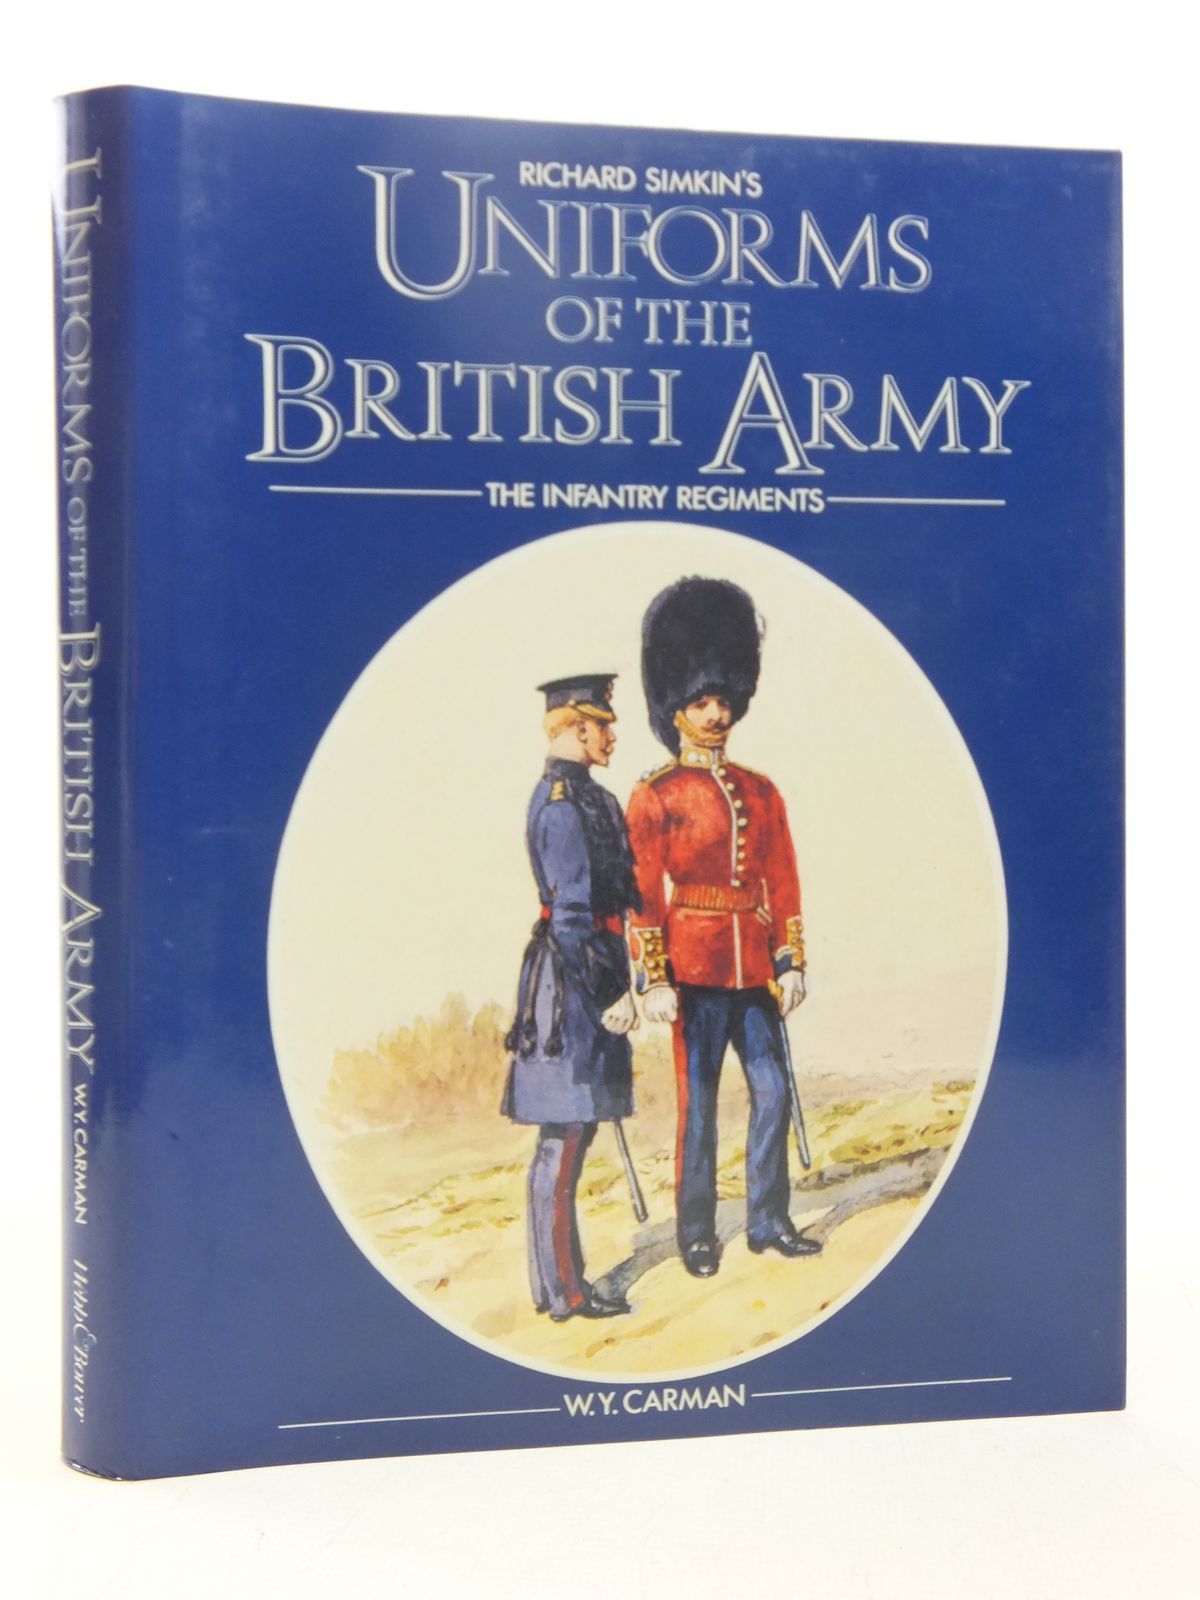 Photo of UNIFORMS OF THE BRITISH ARMY INFANTRY, ROYAL ARTILLERY, ROYAL ENGINEERS AND OTHER CORPS written by Carman, William Y. illustrated by Simkin, Richard published by Webb & Bower (STOCK CODE: 1607385)  for sale by Stella & Rose's Books